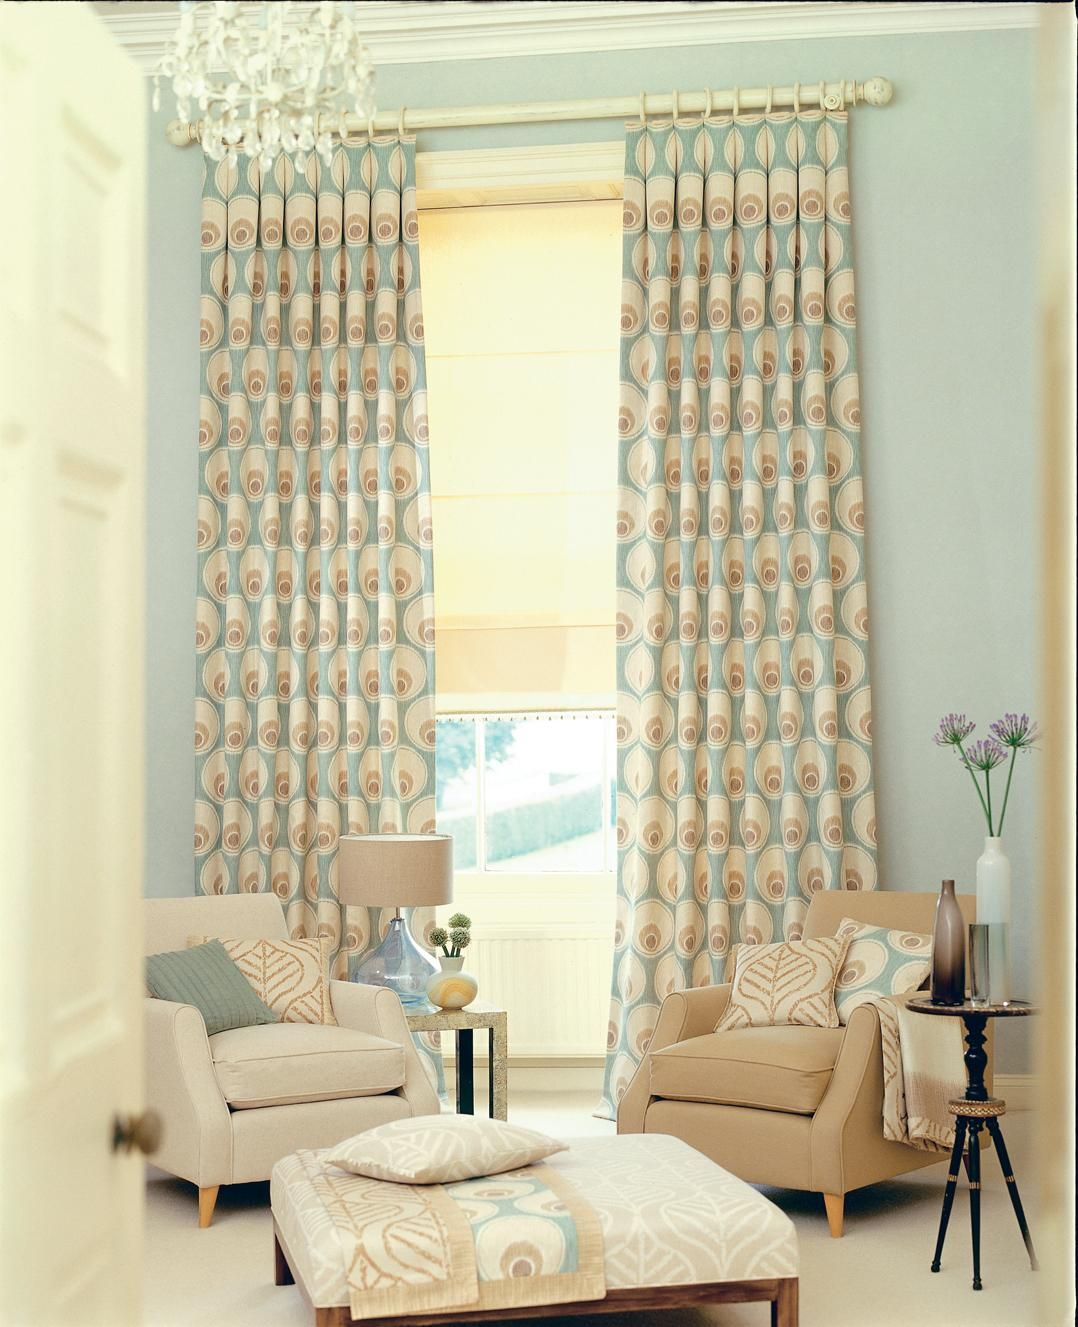 Elegant Interior Design and Living Room Drape Curtain Ideas ...